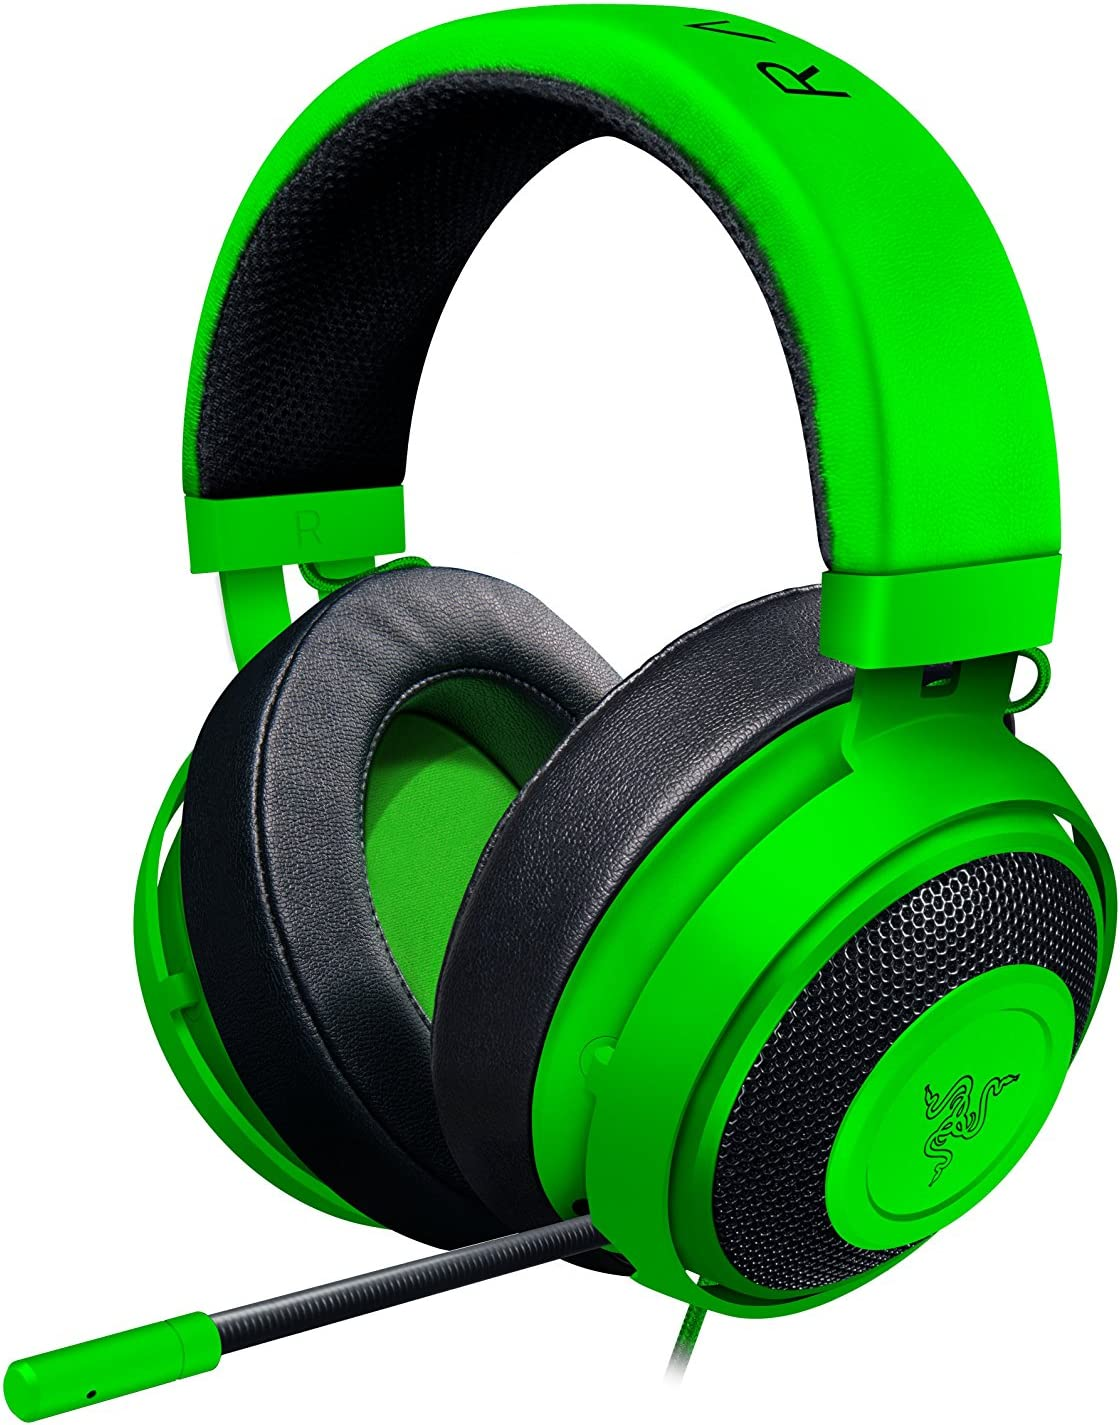 Razer Kraken Pro V2 Lightweight Aluminum Headband – Retractable Mic – In-Line Remote – Gaming Headset Works with PC, PS4, Xbox One, Switch, Mobile Devices – Green